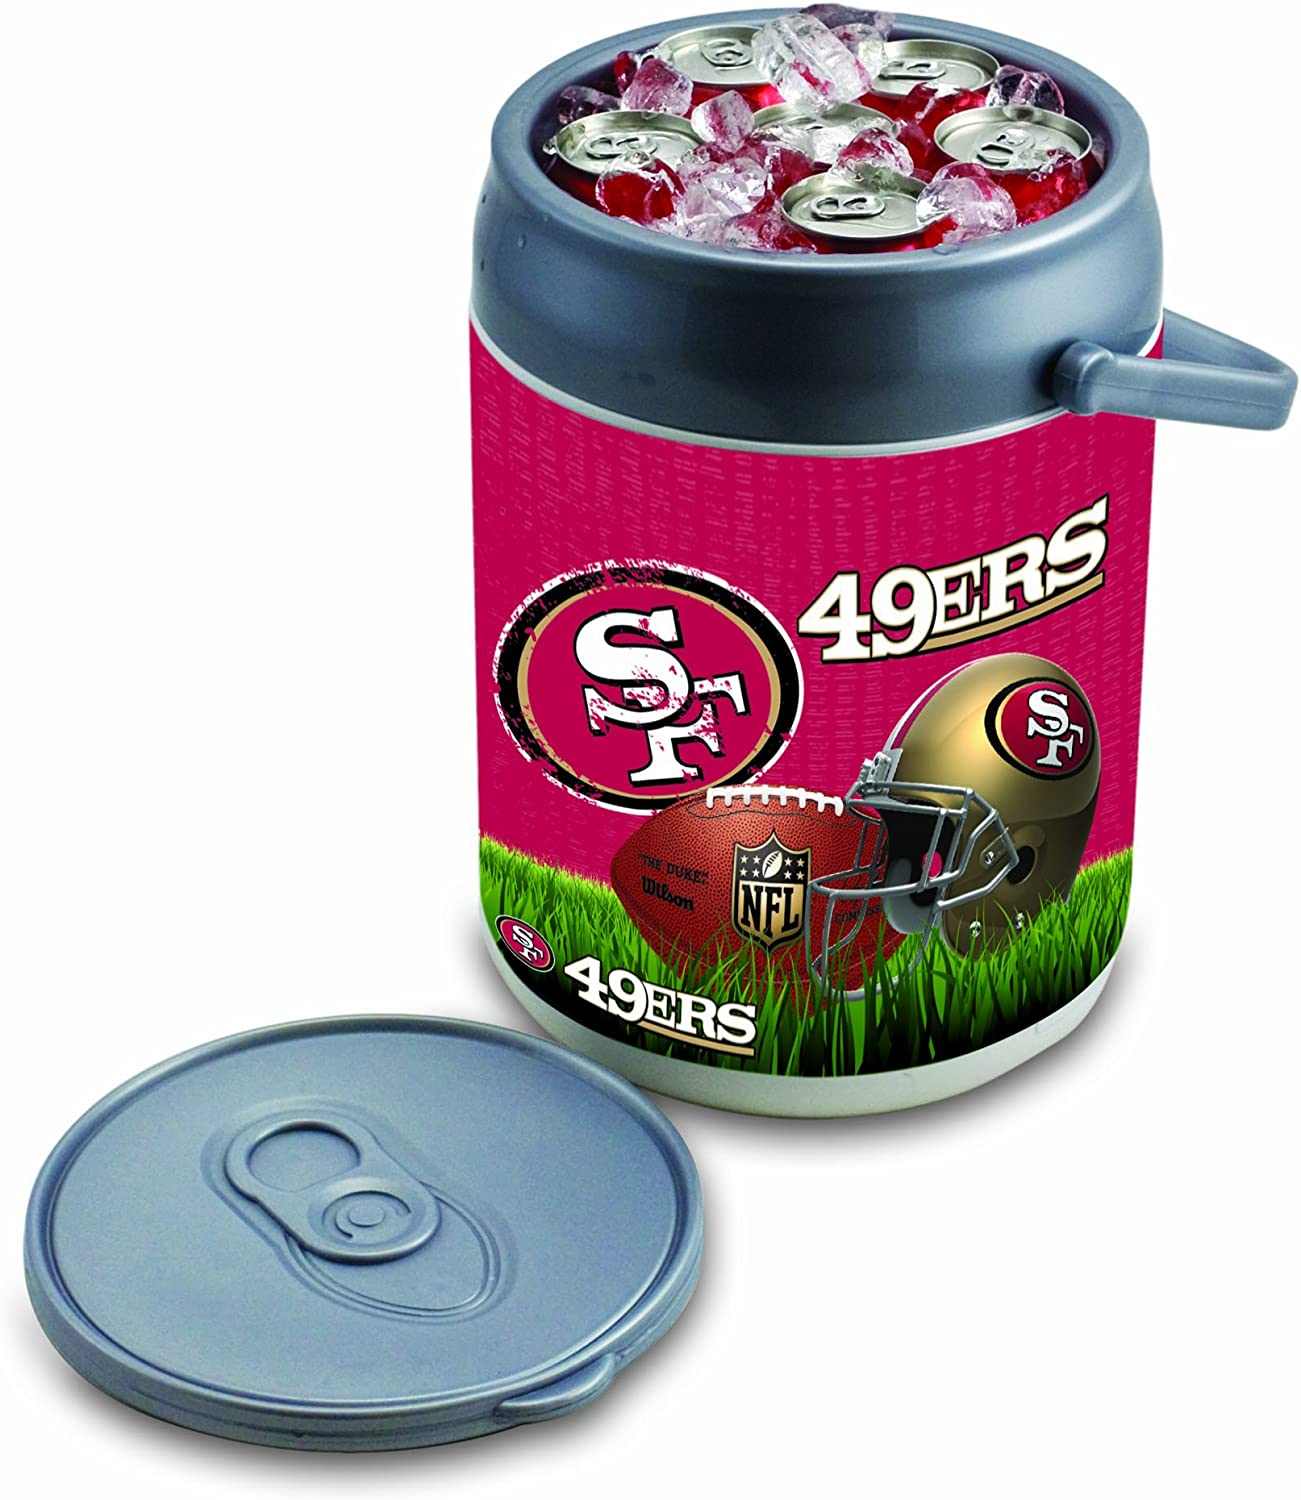 NFL San Francisco 49ers Insulated Can Cooler